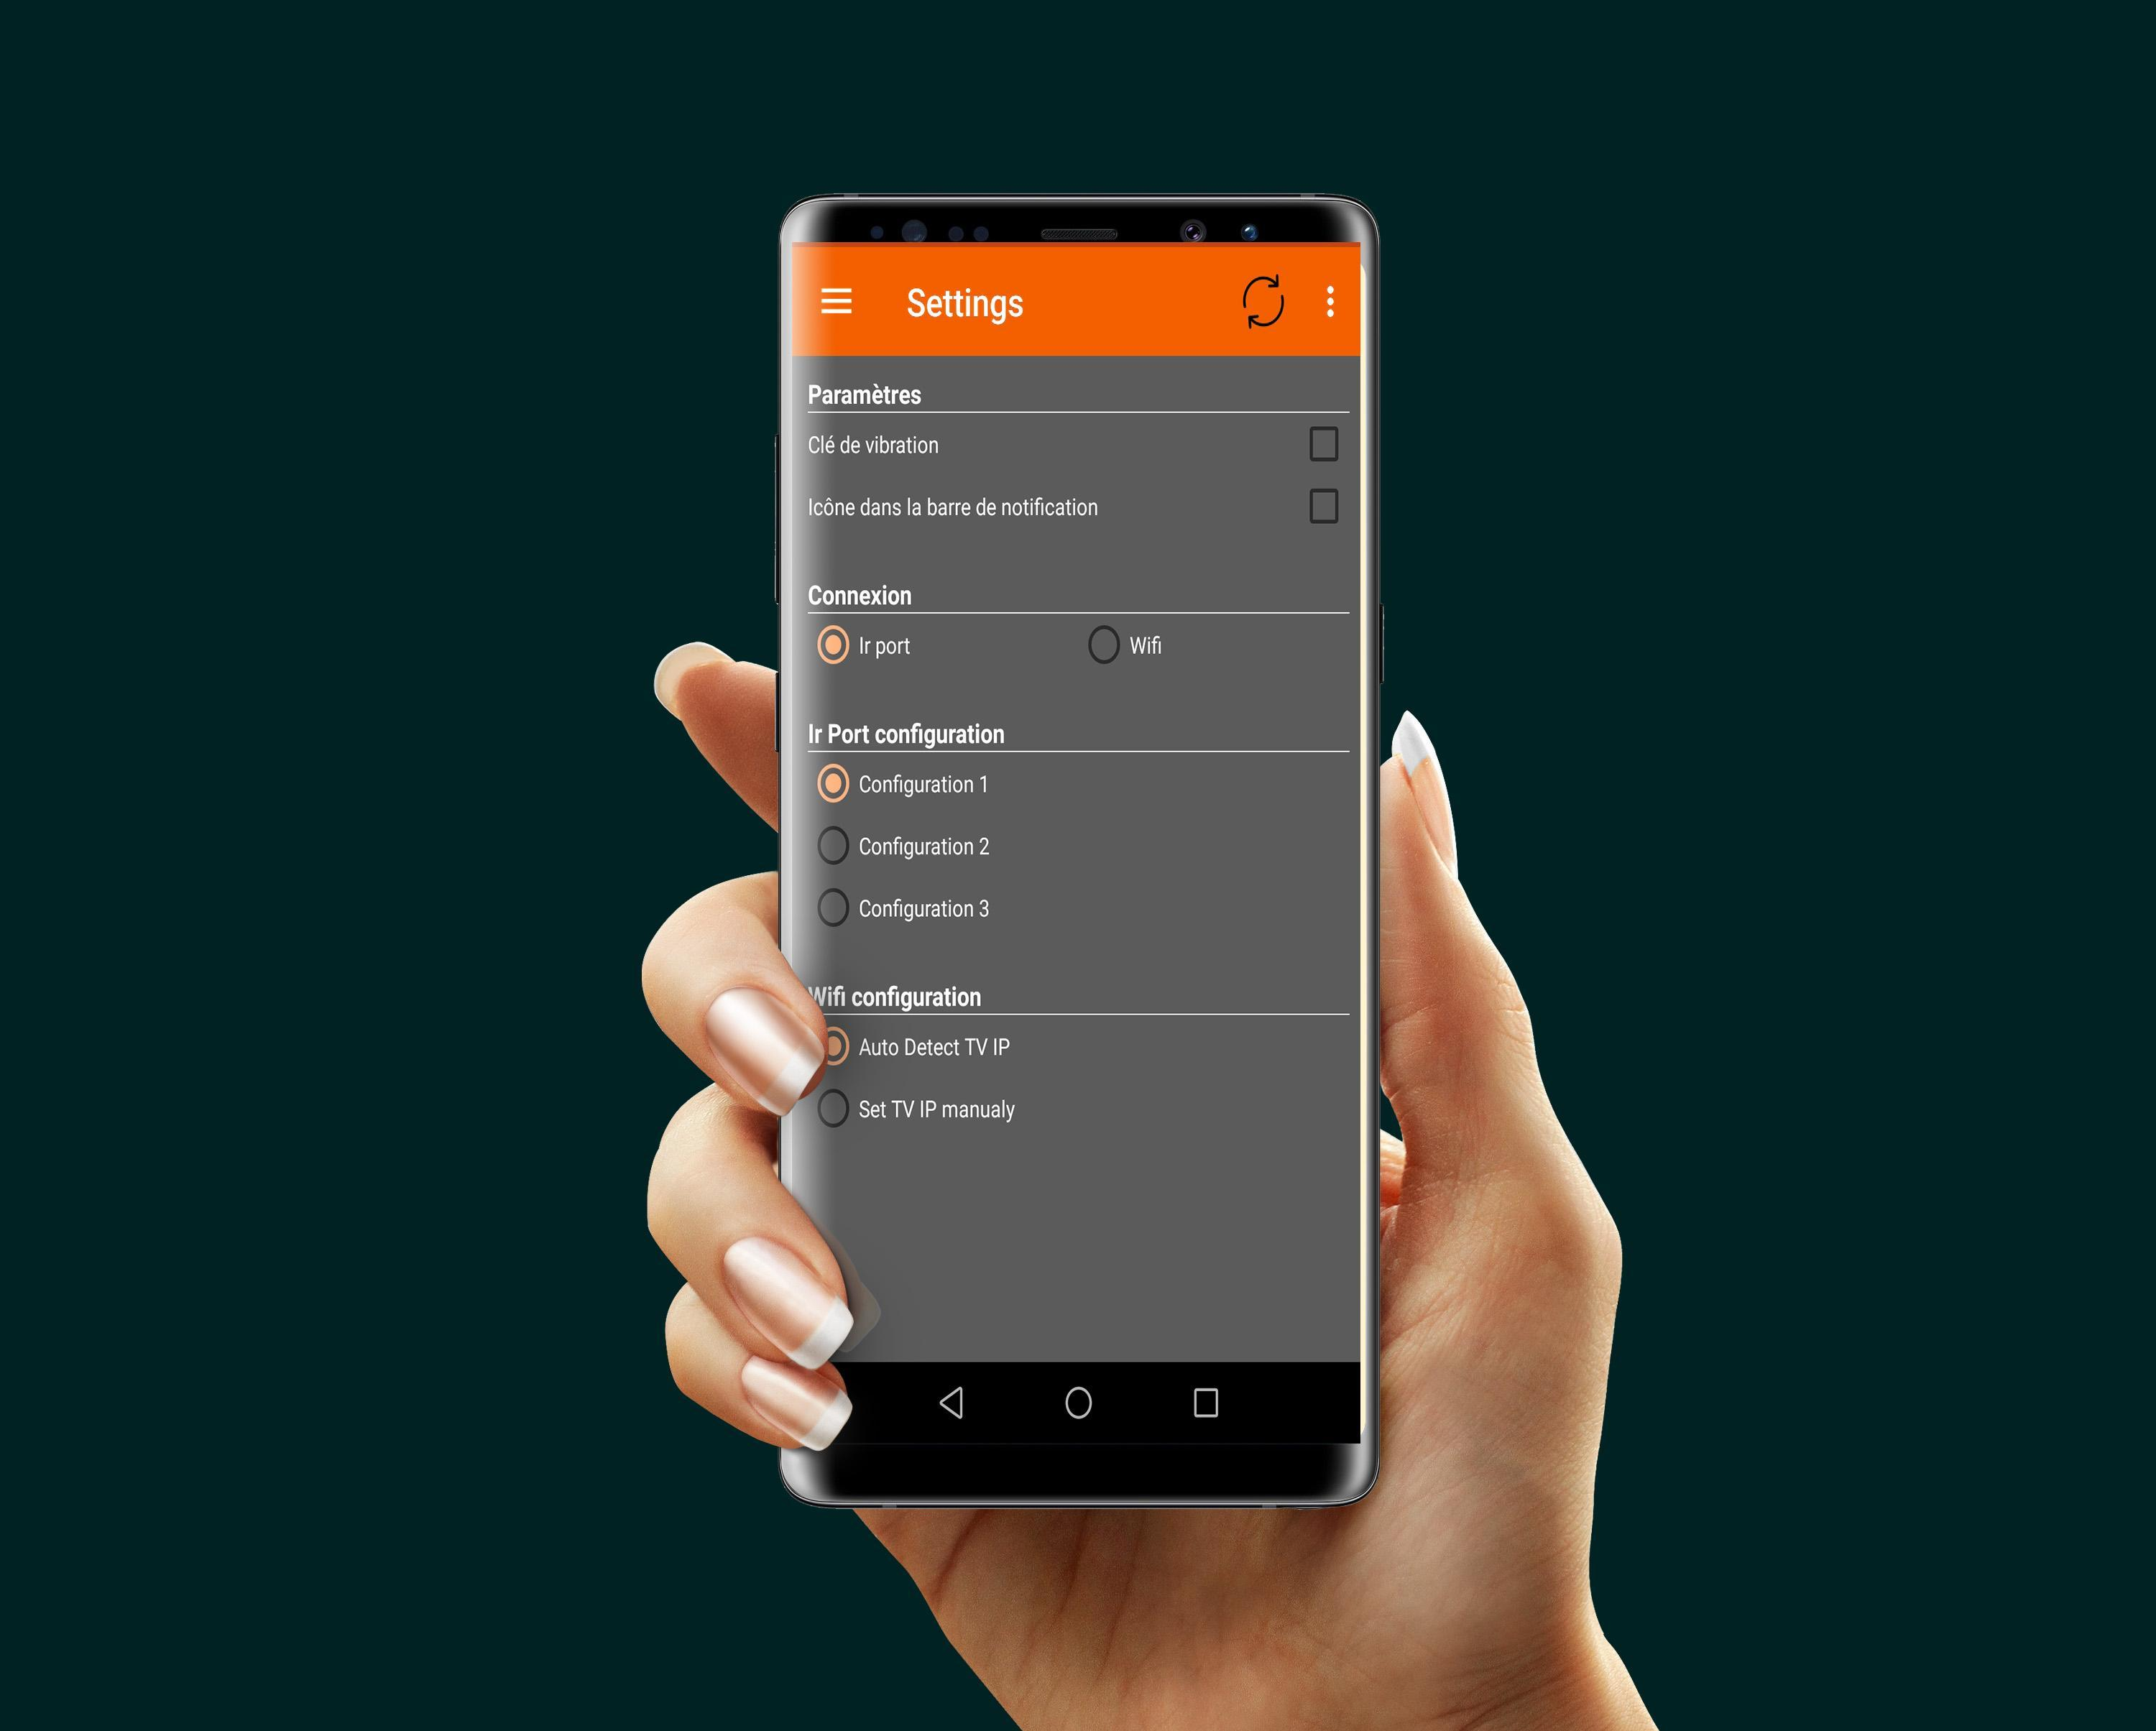 Remote Contol For Samsung Tv for Android - APK Download